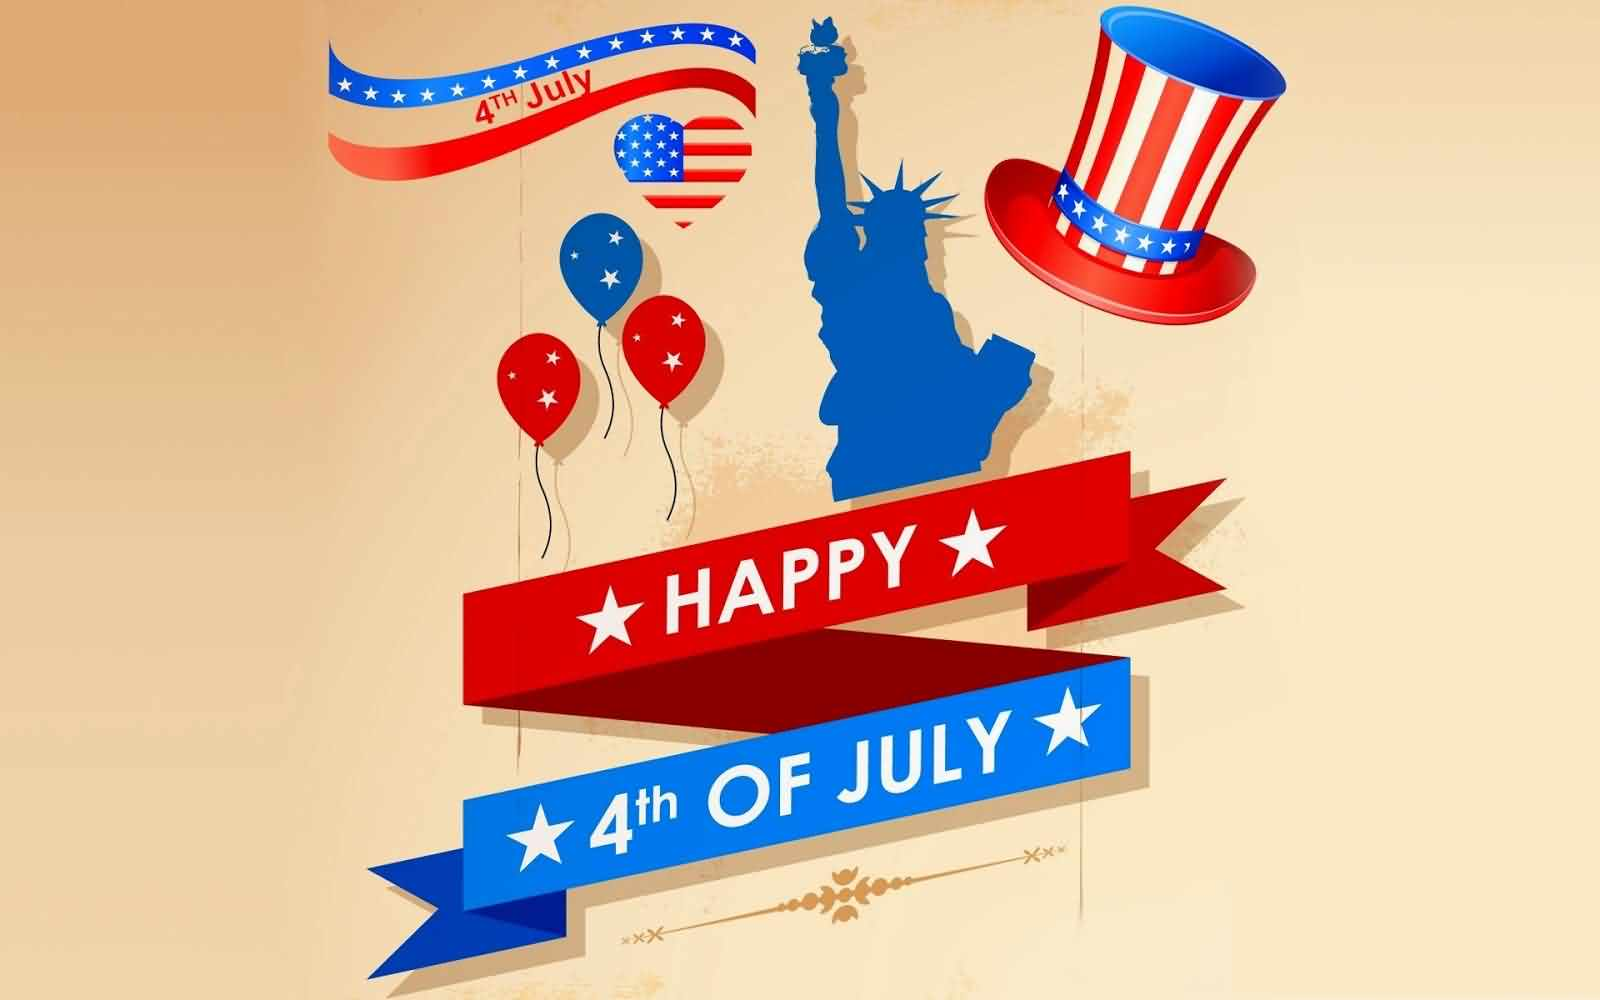 Declaration of Independence 241 years ago on July 4, 1776 Greetigns Message Image